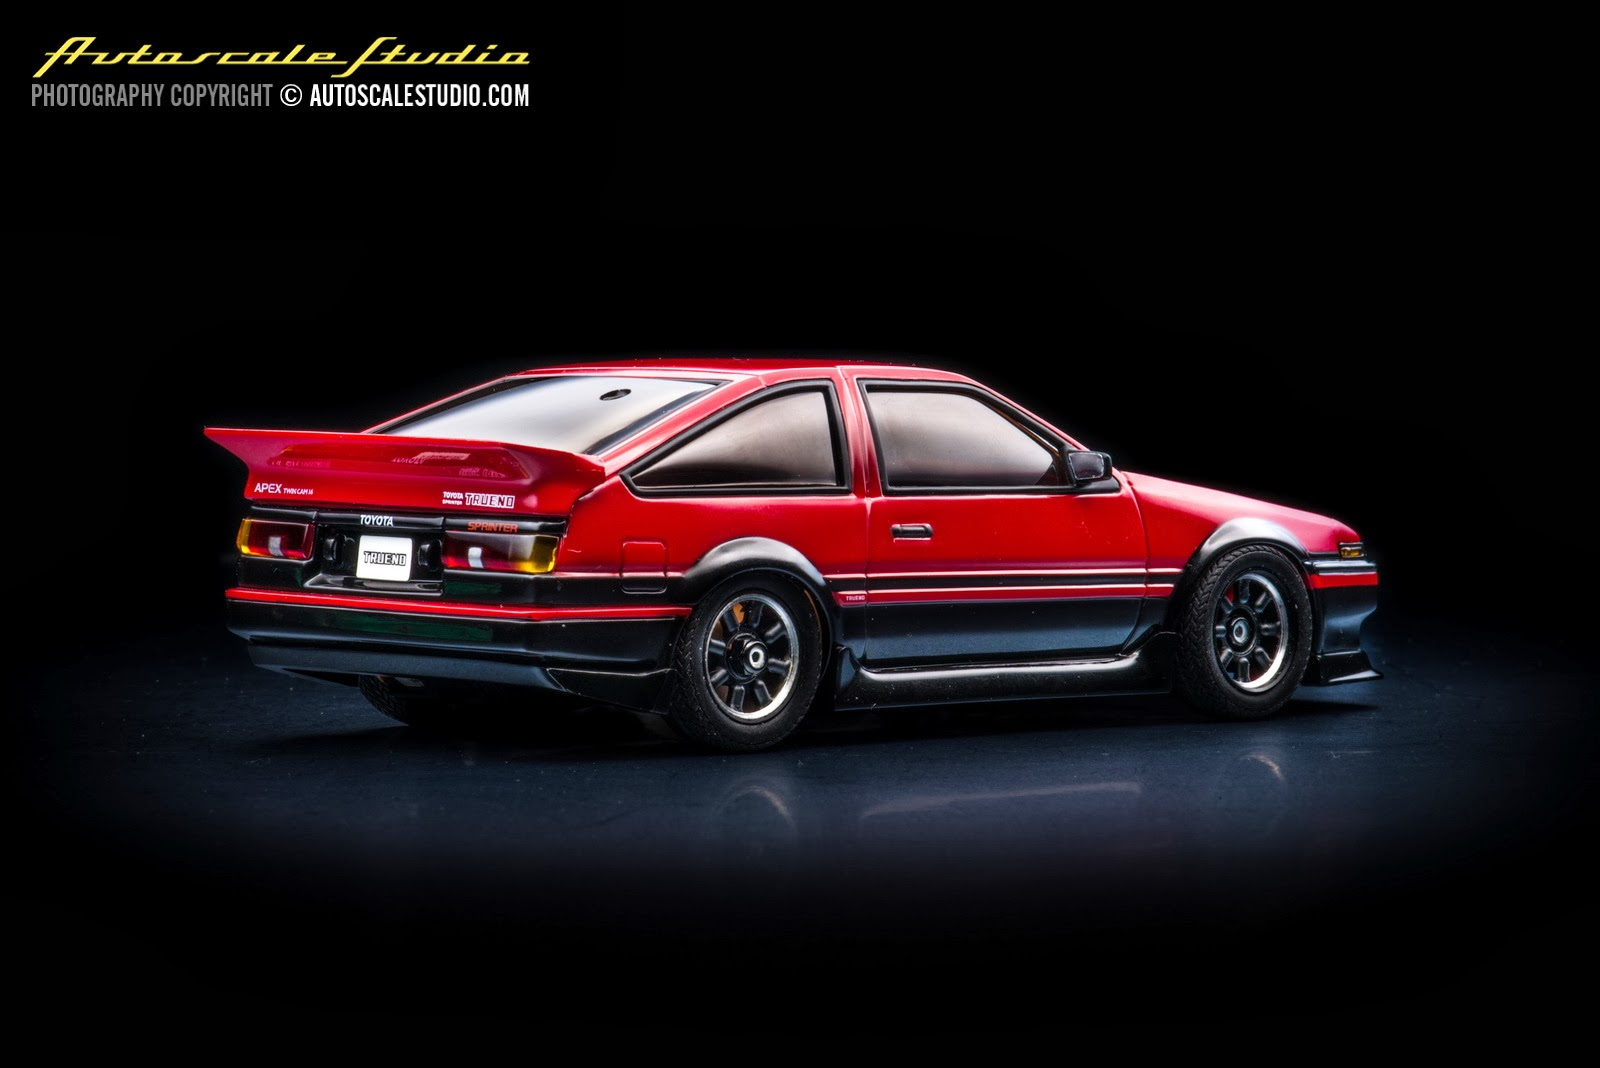 mzp410bkr toyota sprinter trueno ae86 aero version red autoscale studio. Black Bedroom Furniture Sets. Home Design Ideas